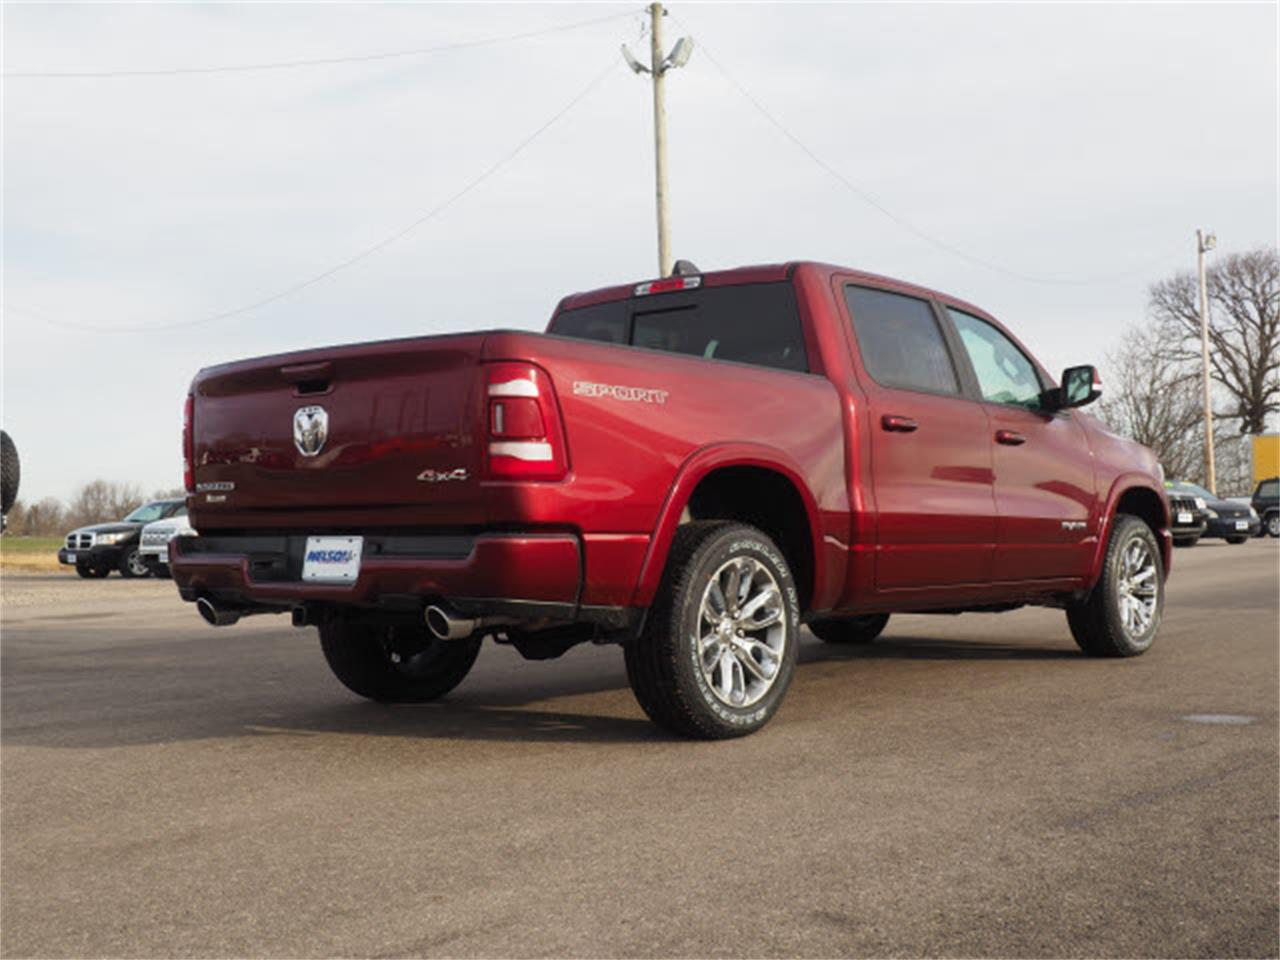 2020 Dodge Ram 1500 (CC-1327587) for sale in Marysville, Ohio